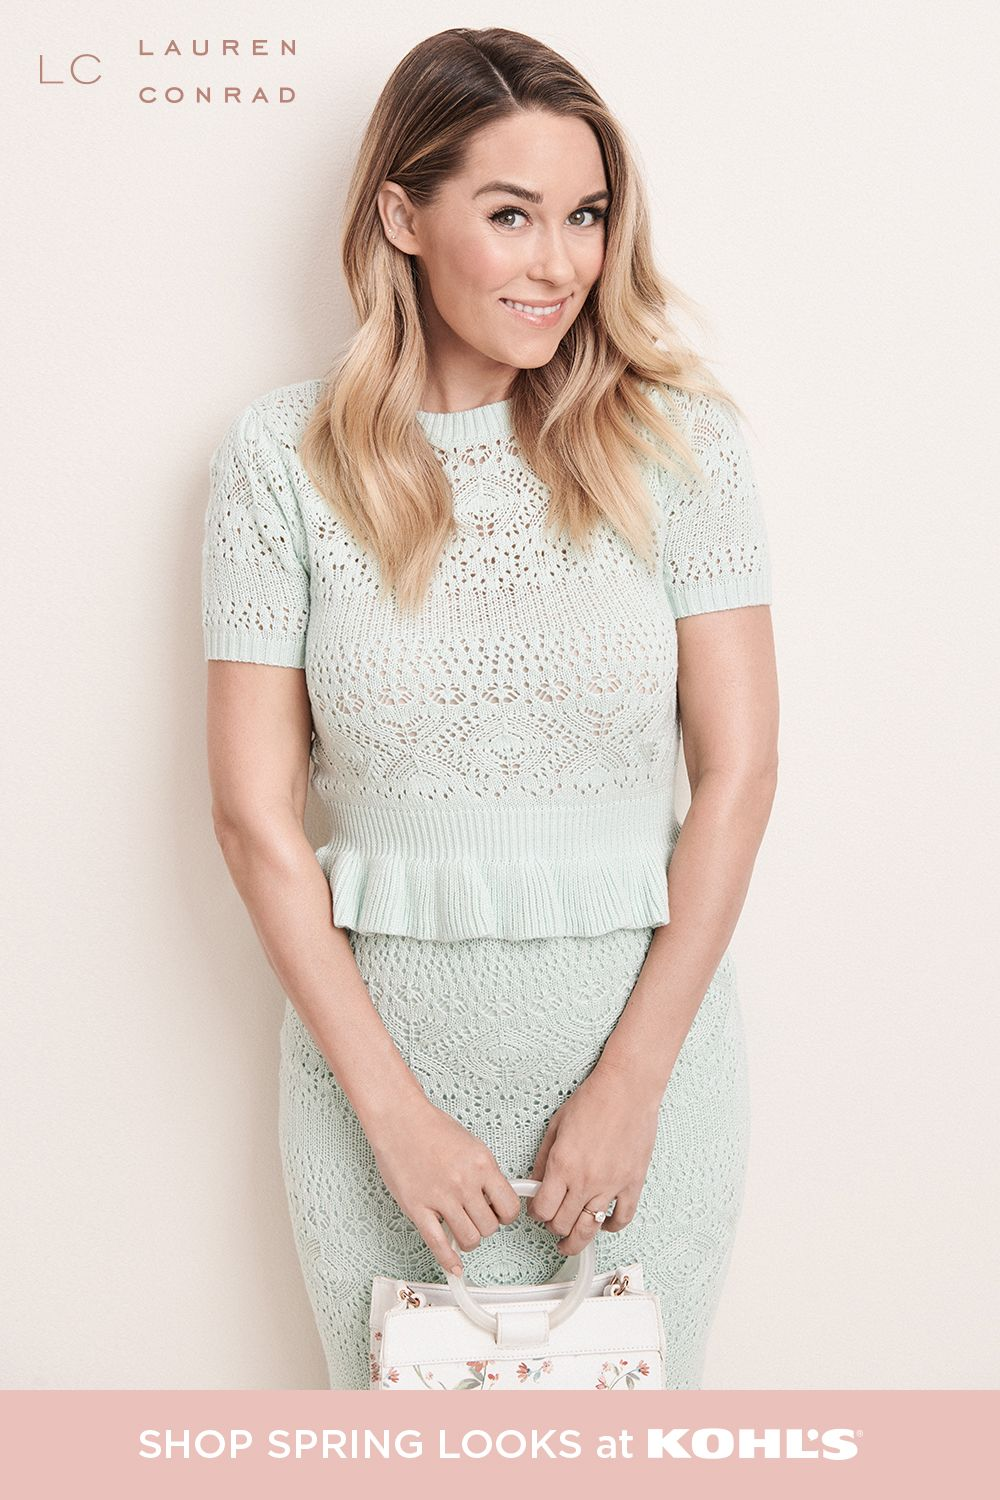 Pretty pastels are so in this season and we're definitely here for it. Bring on spring with a must-have set in the cutest mint hue. Pair it with a floral purse for the perfect finishing touch. Find matching sets, dresses, tops, jeans, bags and more from LC Lauren Conrad at Kohl's and Kohls.com. #springstyle #laurenconrad